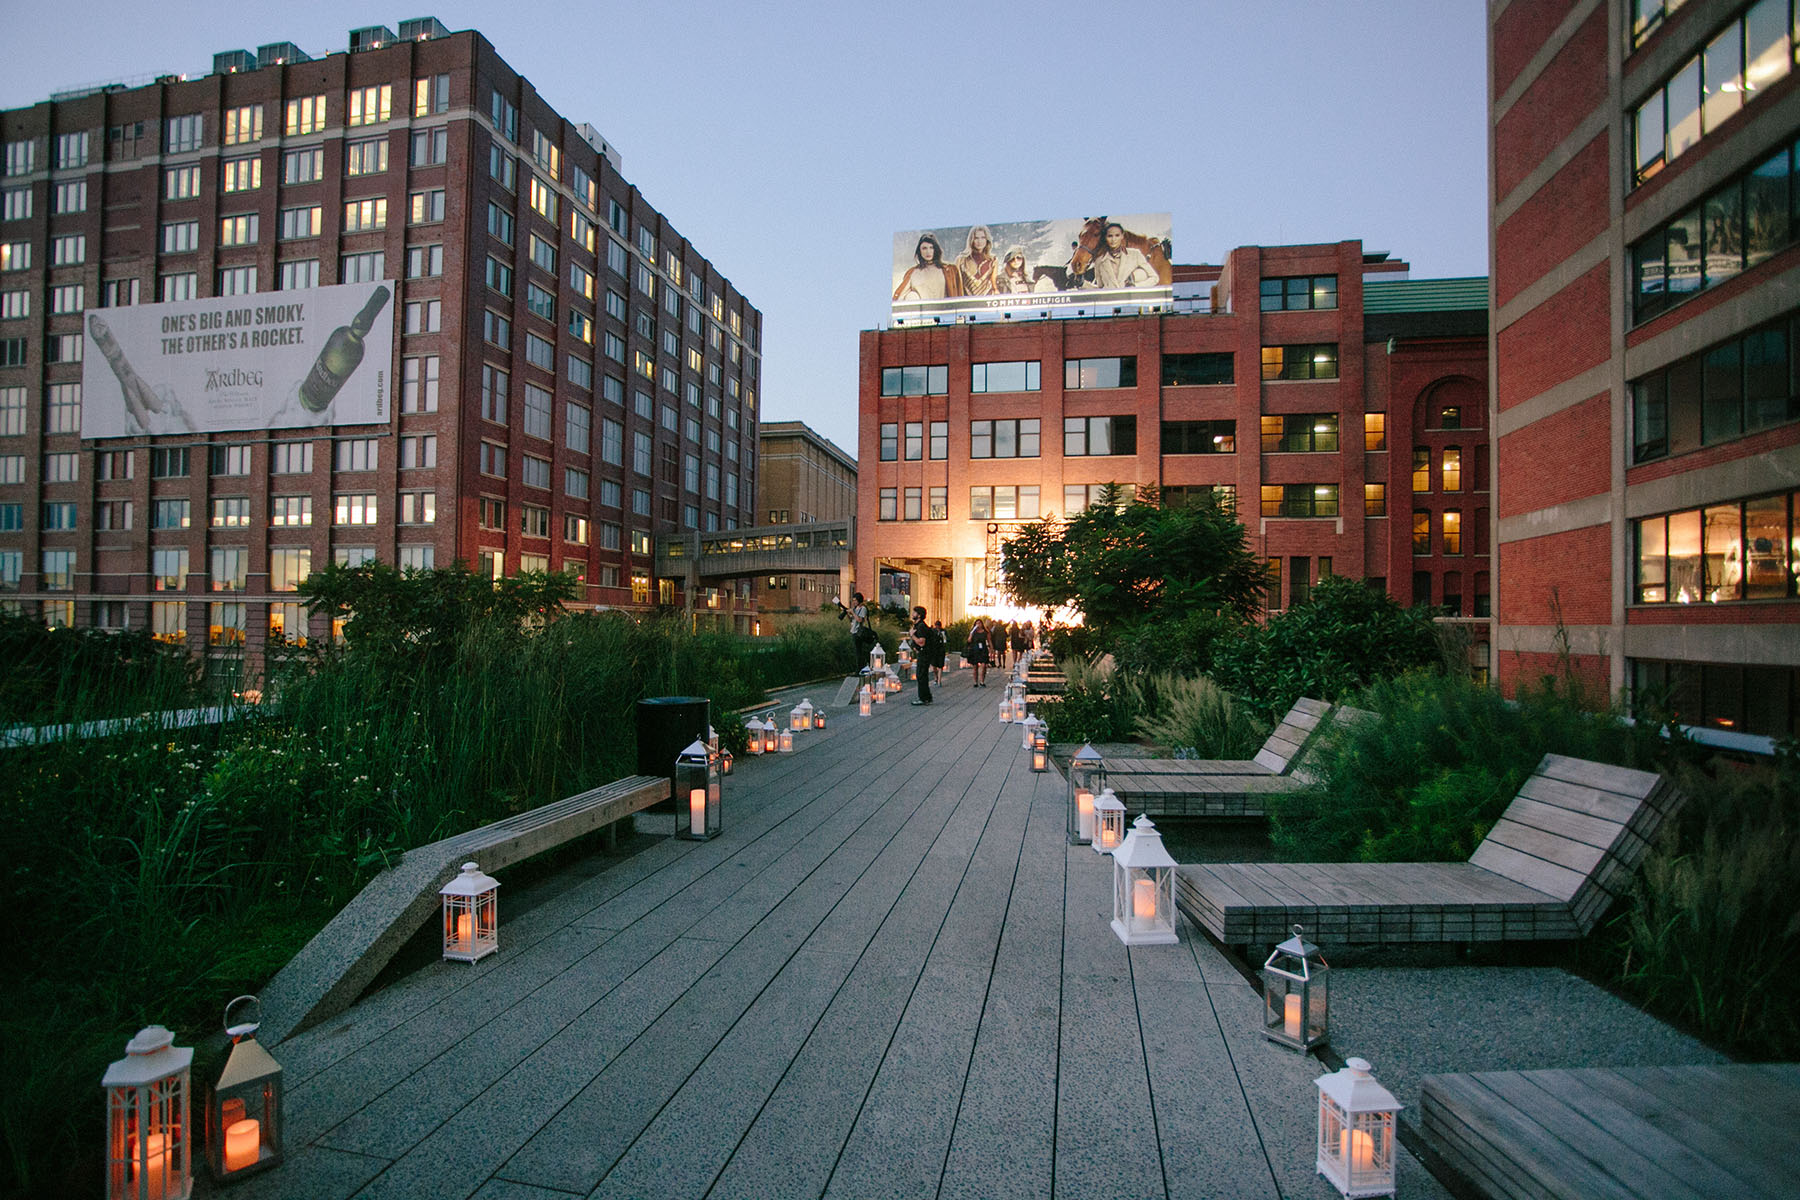 Photo #6 Diller - von Furstenberg Sundeck  at High Line - Chelsea Market Passage